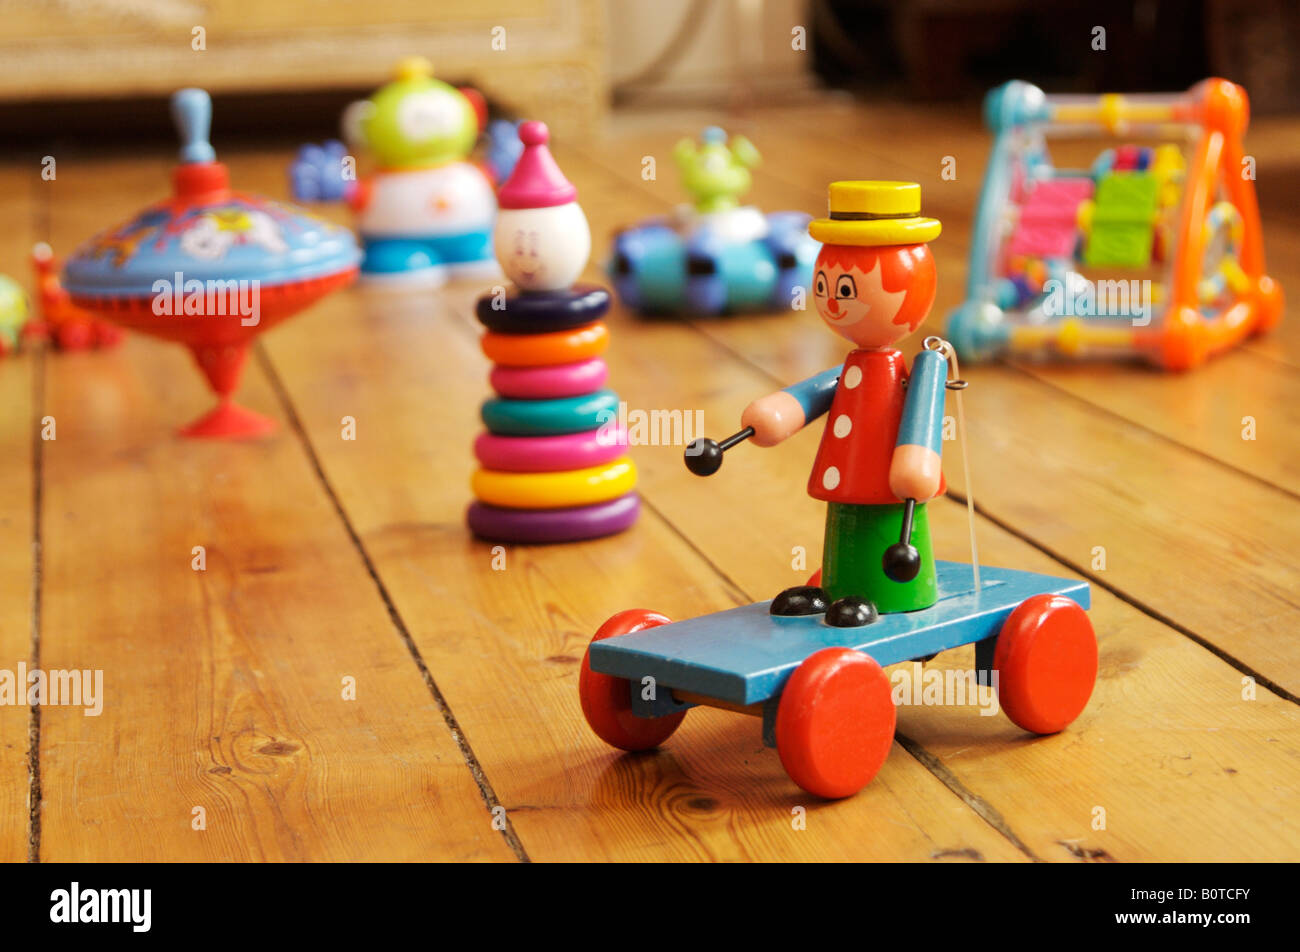 Children's toys on a wooden floor - Stock Image